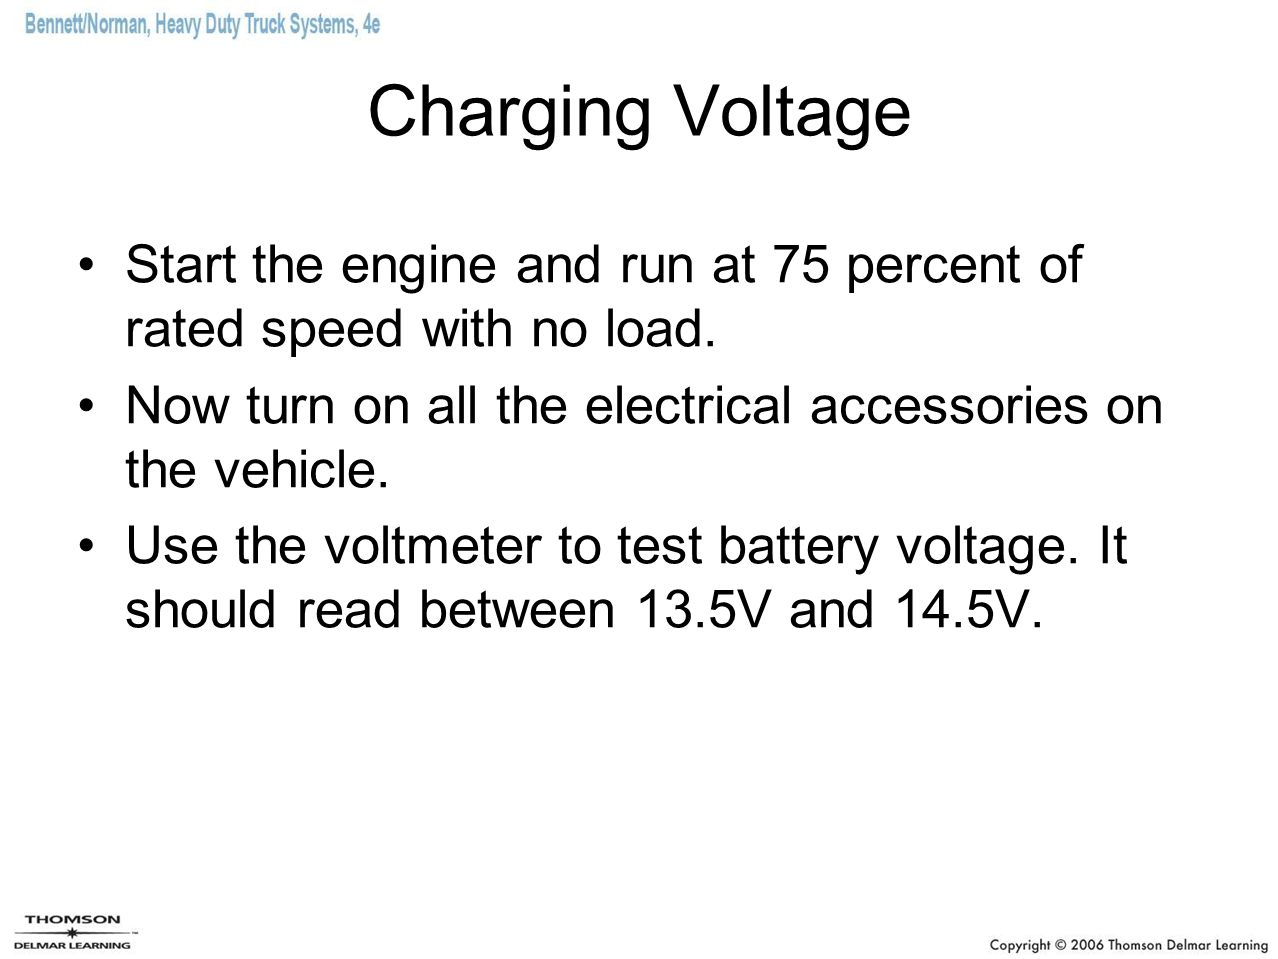 Charging Voltage Start the engine and run at 75 percent of rated speed with no load. Now turn on all the electrical accessories on the vehicle.